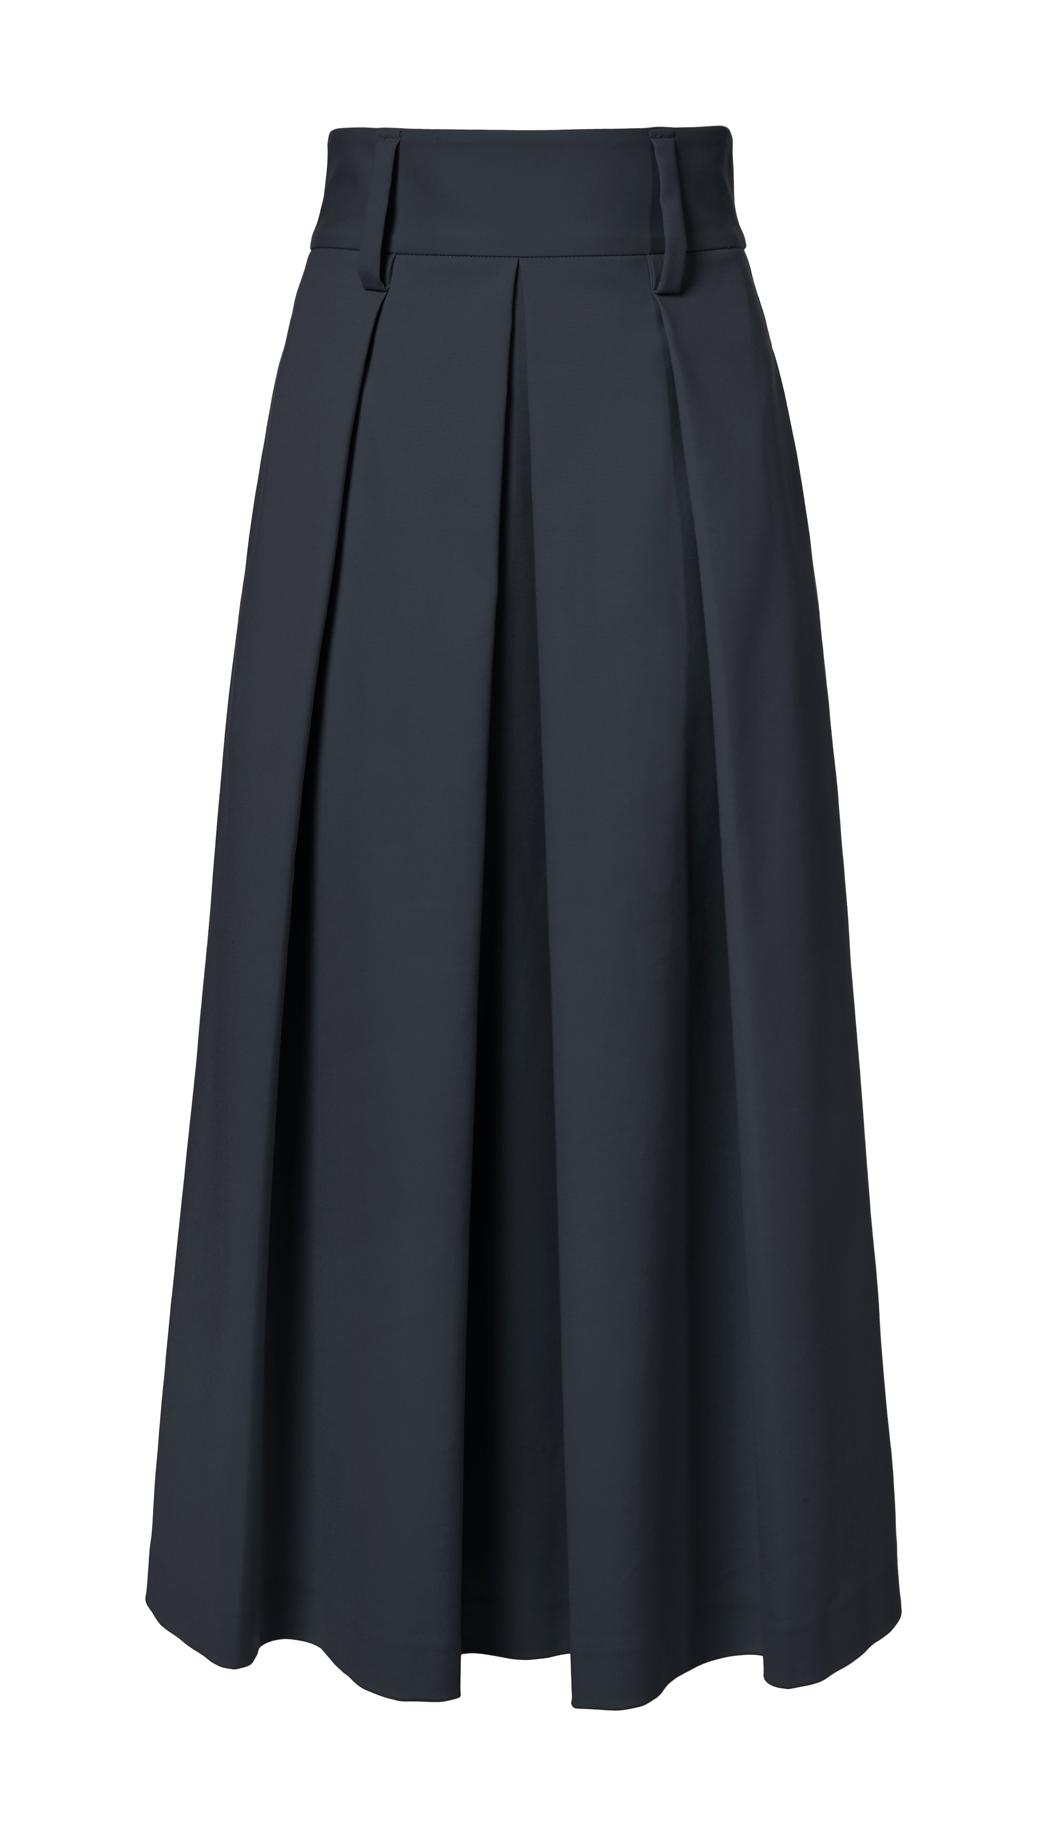 Tibi Agathe High Waisted Skirt in Black | Lyst